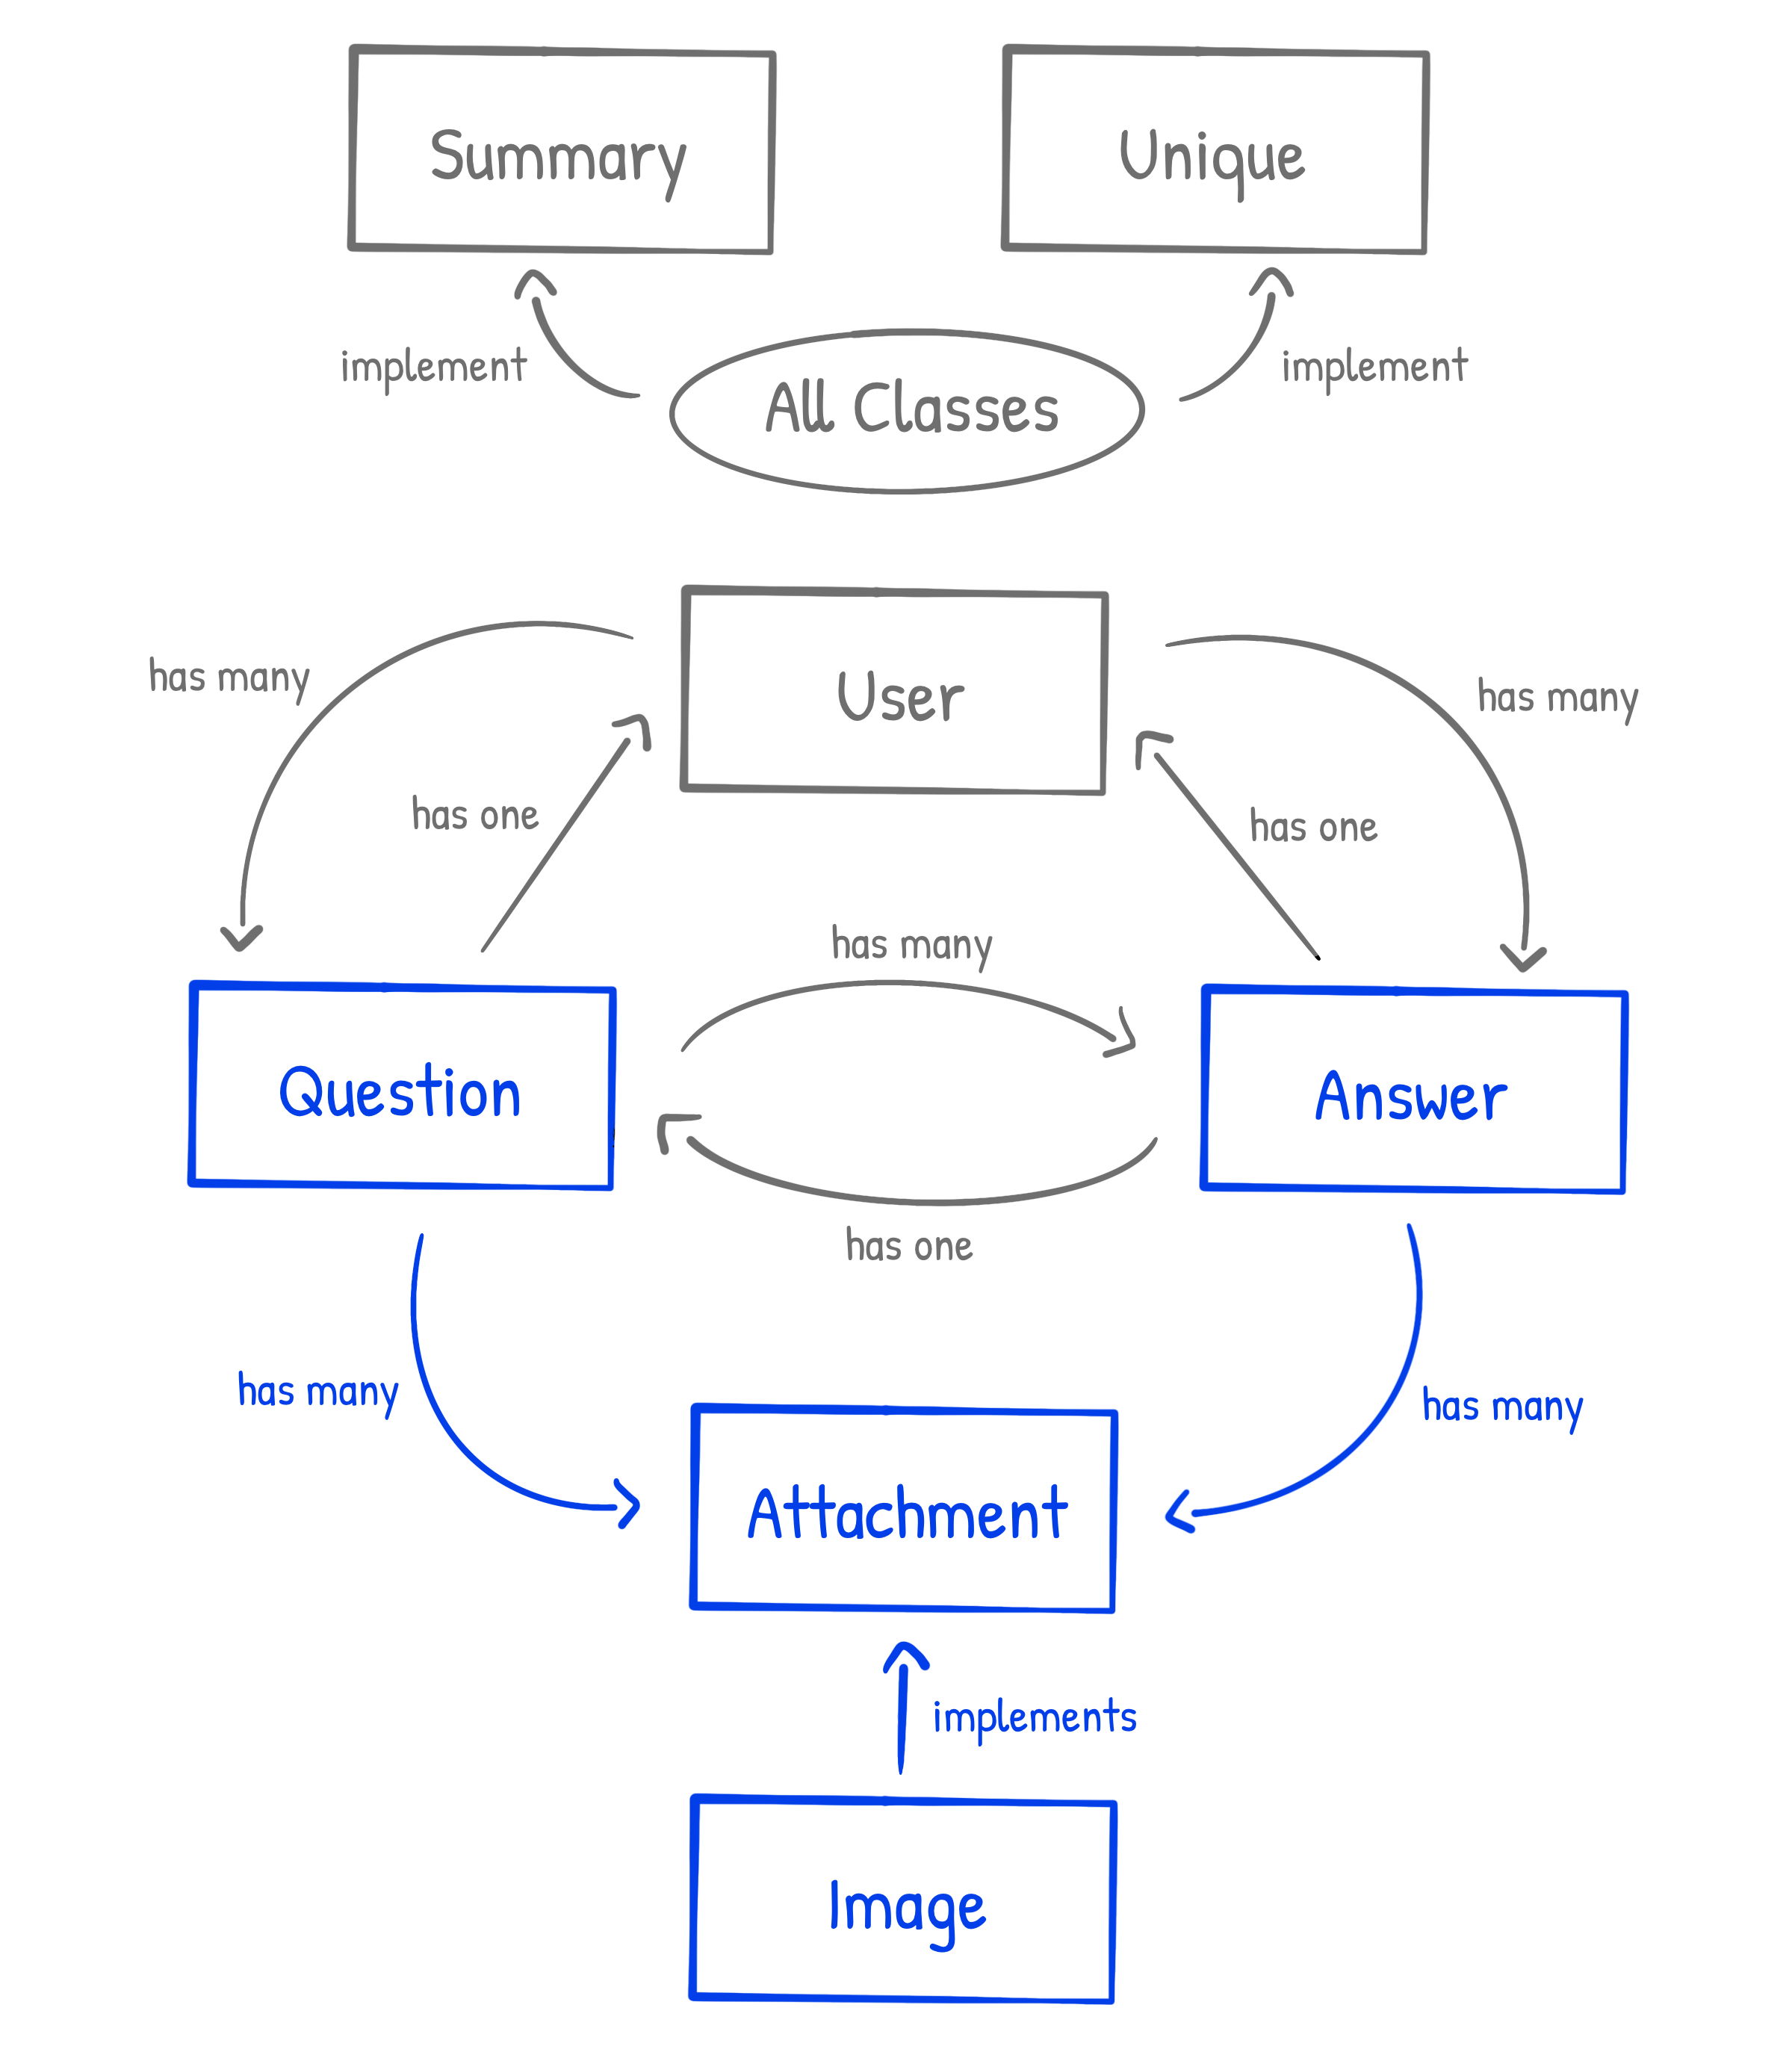 Attachment and Image Class Diagram